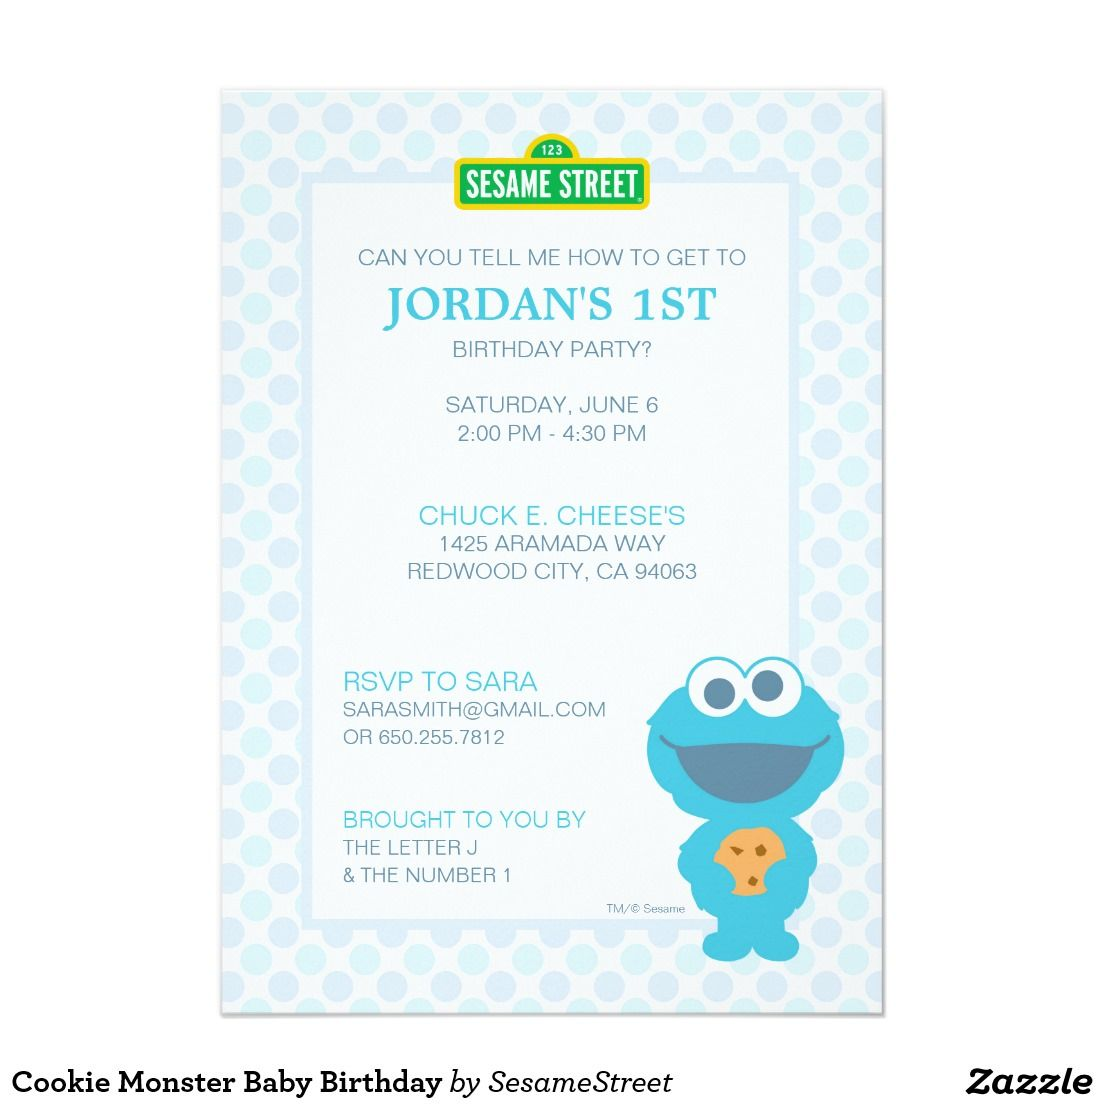 Cookie Monster Baby Birthday Card | Cookie monster, Birthdays and ...